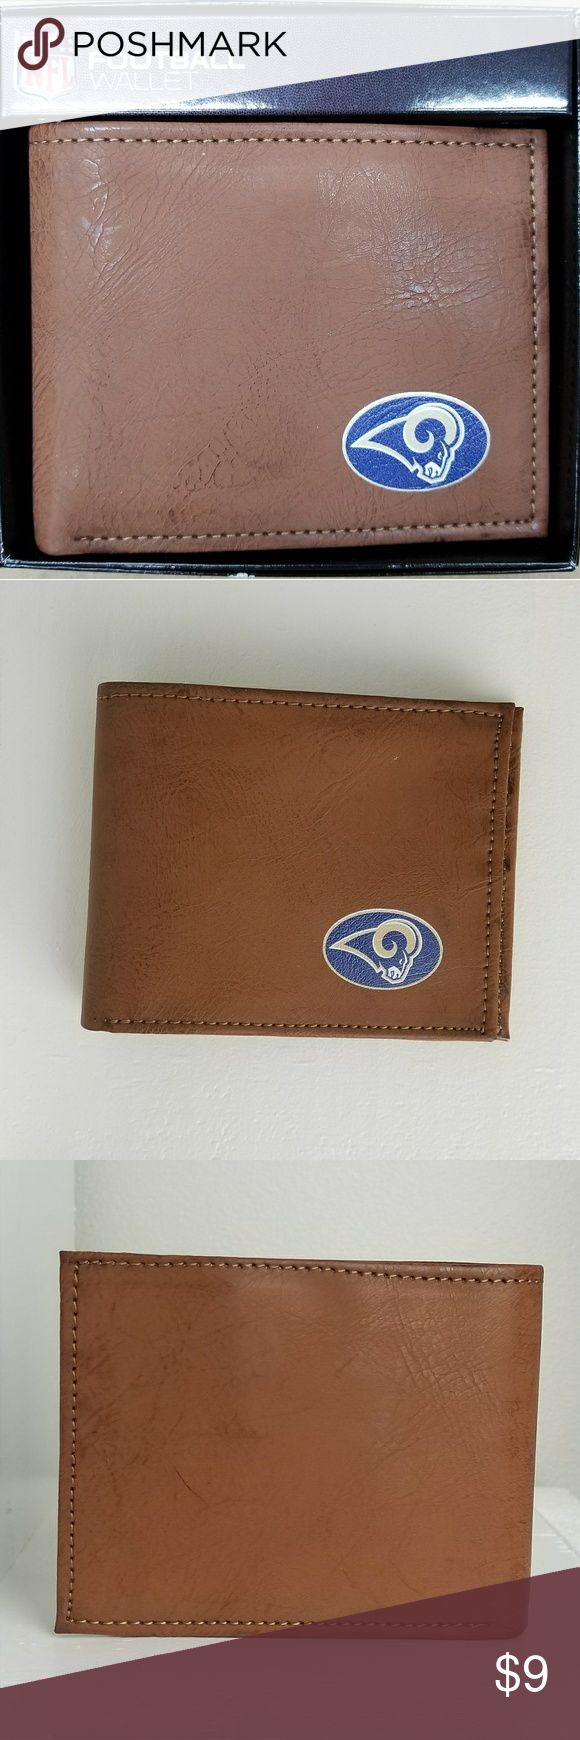 Los Angeles Rams Classic Wallet Officially Licensed NFL Los Angeles Rams Classic Football Wallet. This folding wallet features a team color Los Angeles Rams team logo, six card slots and one pocket on each side behind the card slots. The box has a crinkle on the top lid as shown in the last picture. NIP. NO TRADES. PRICE FIRM. NFL Gamewear Bags Wallets